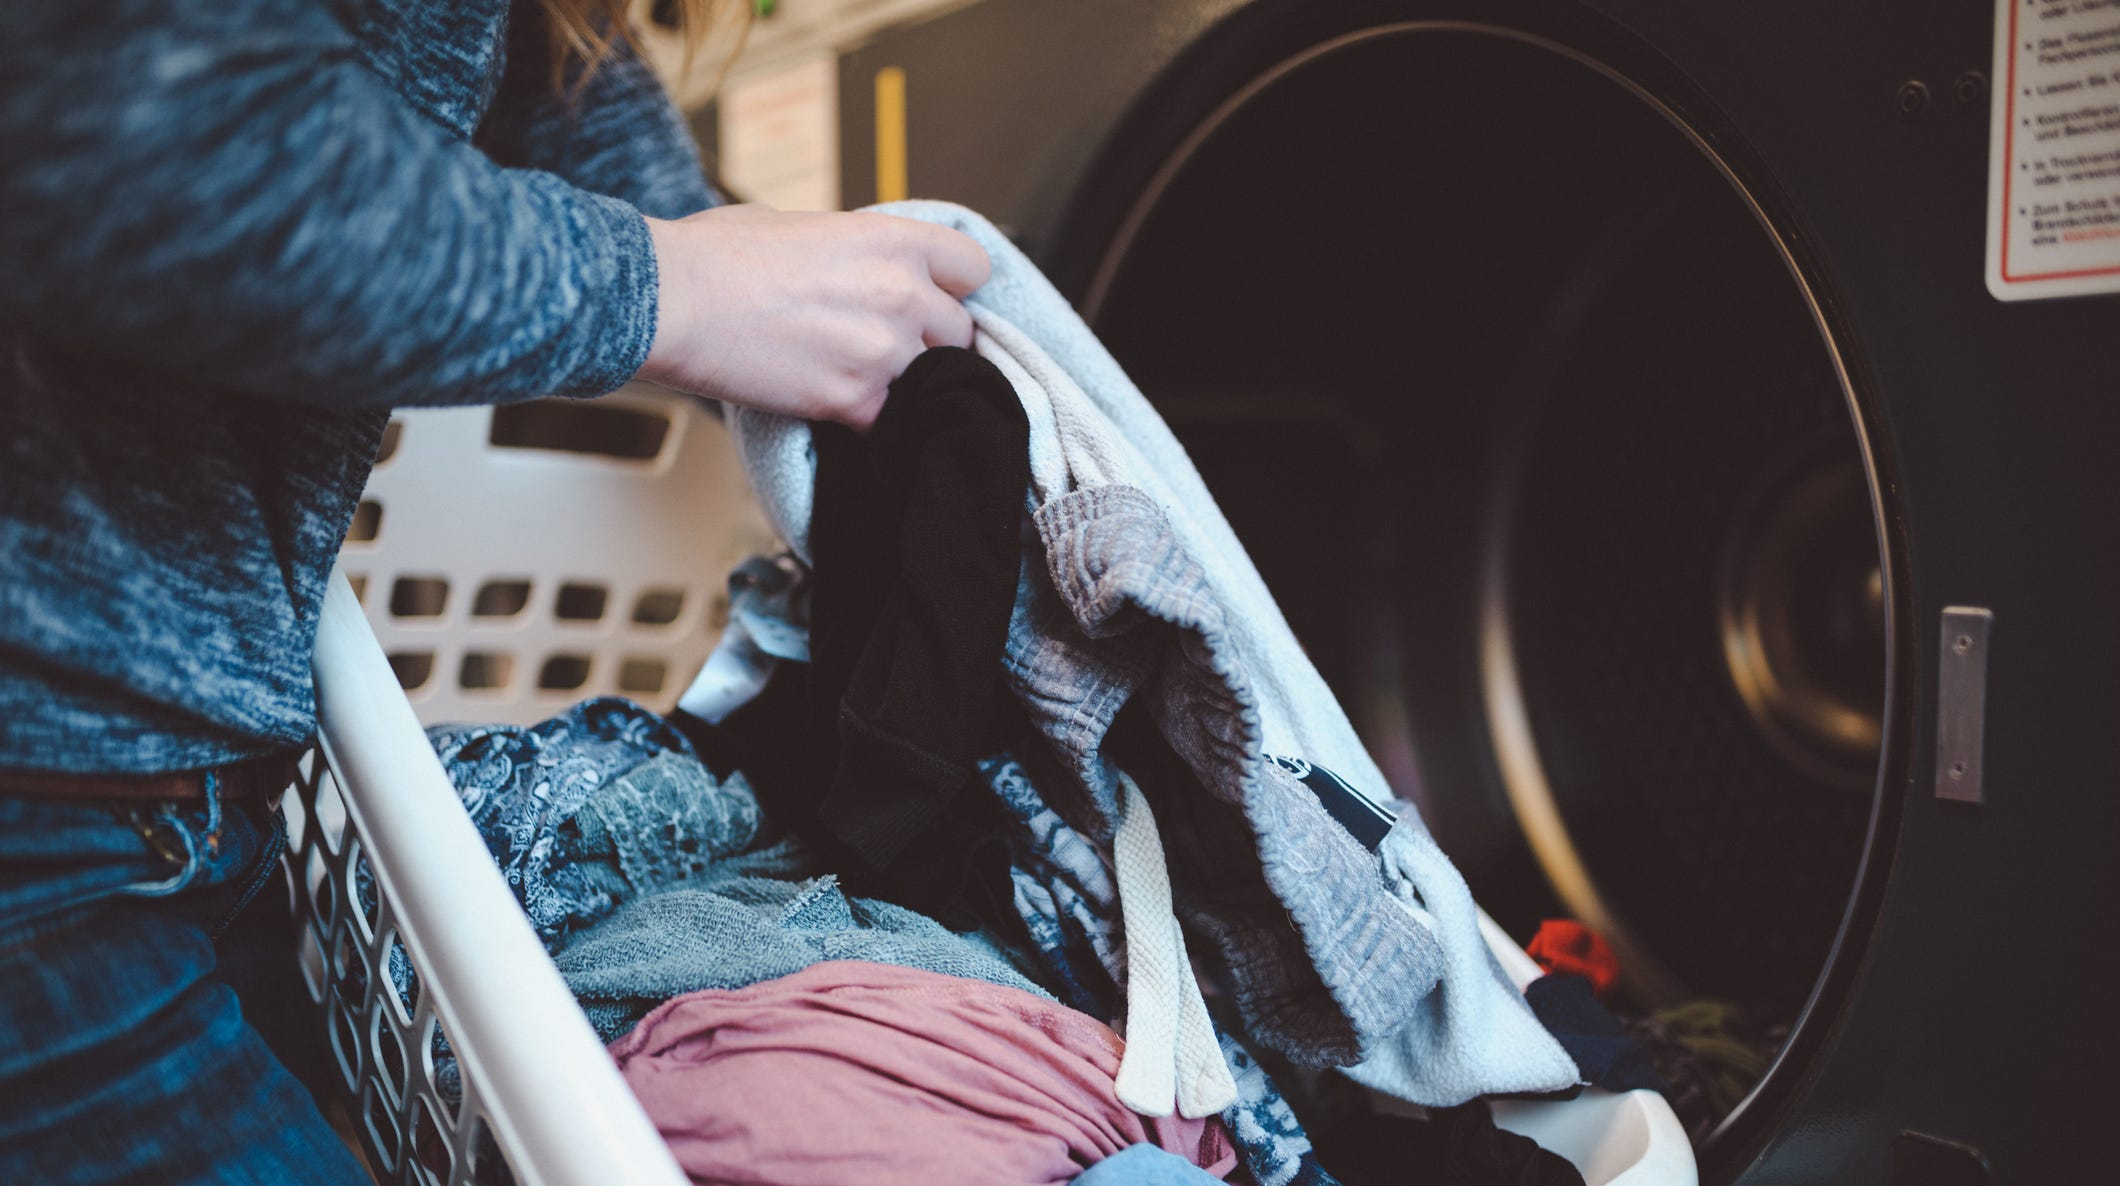 Laundry day doesn't have to add any more noise to your household. Newer appliances are whisper-quiet.